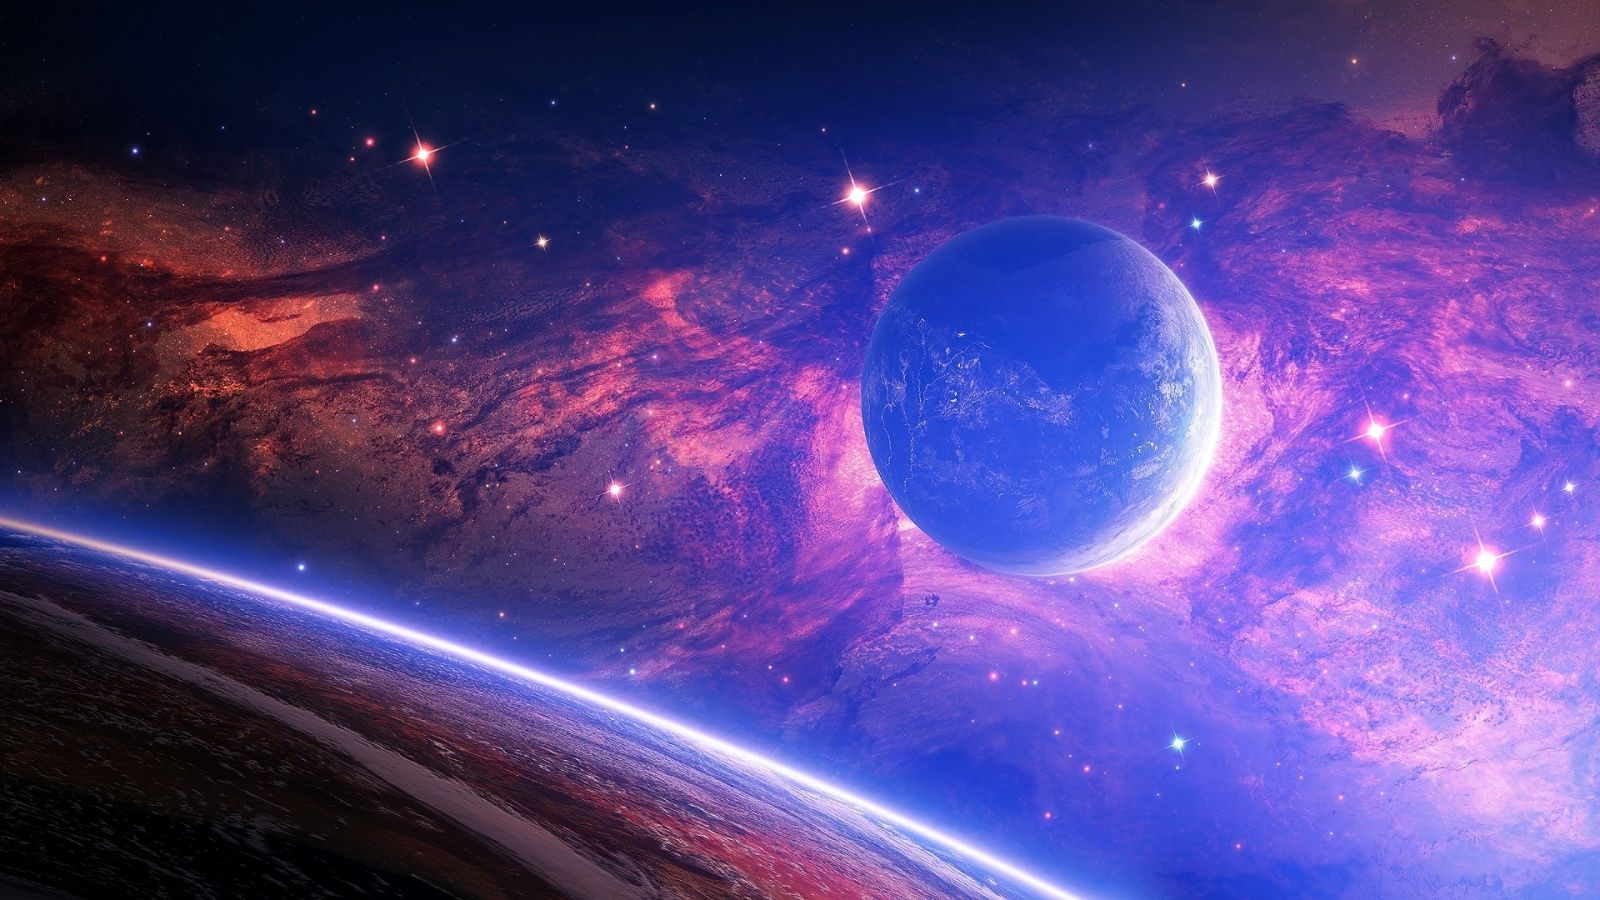 And Star In Nice Space Wallpapers 1600x900